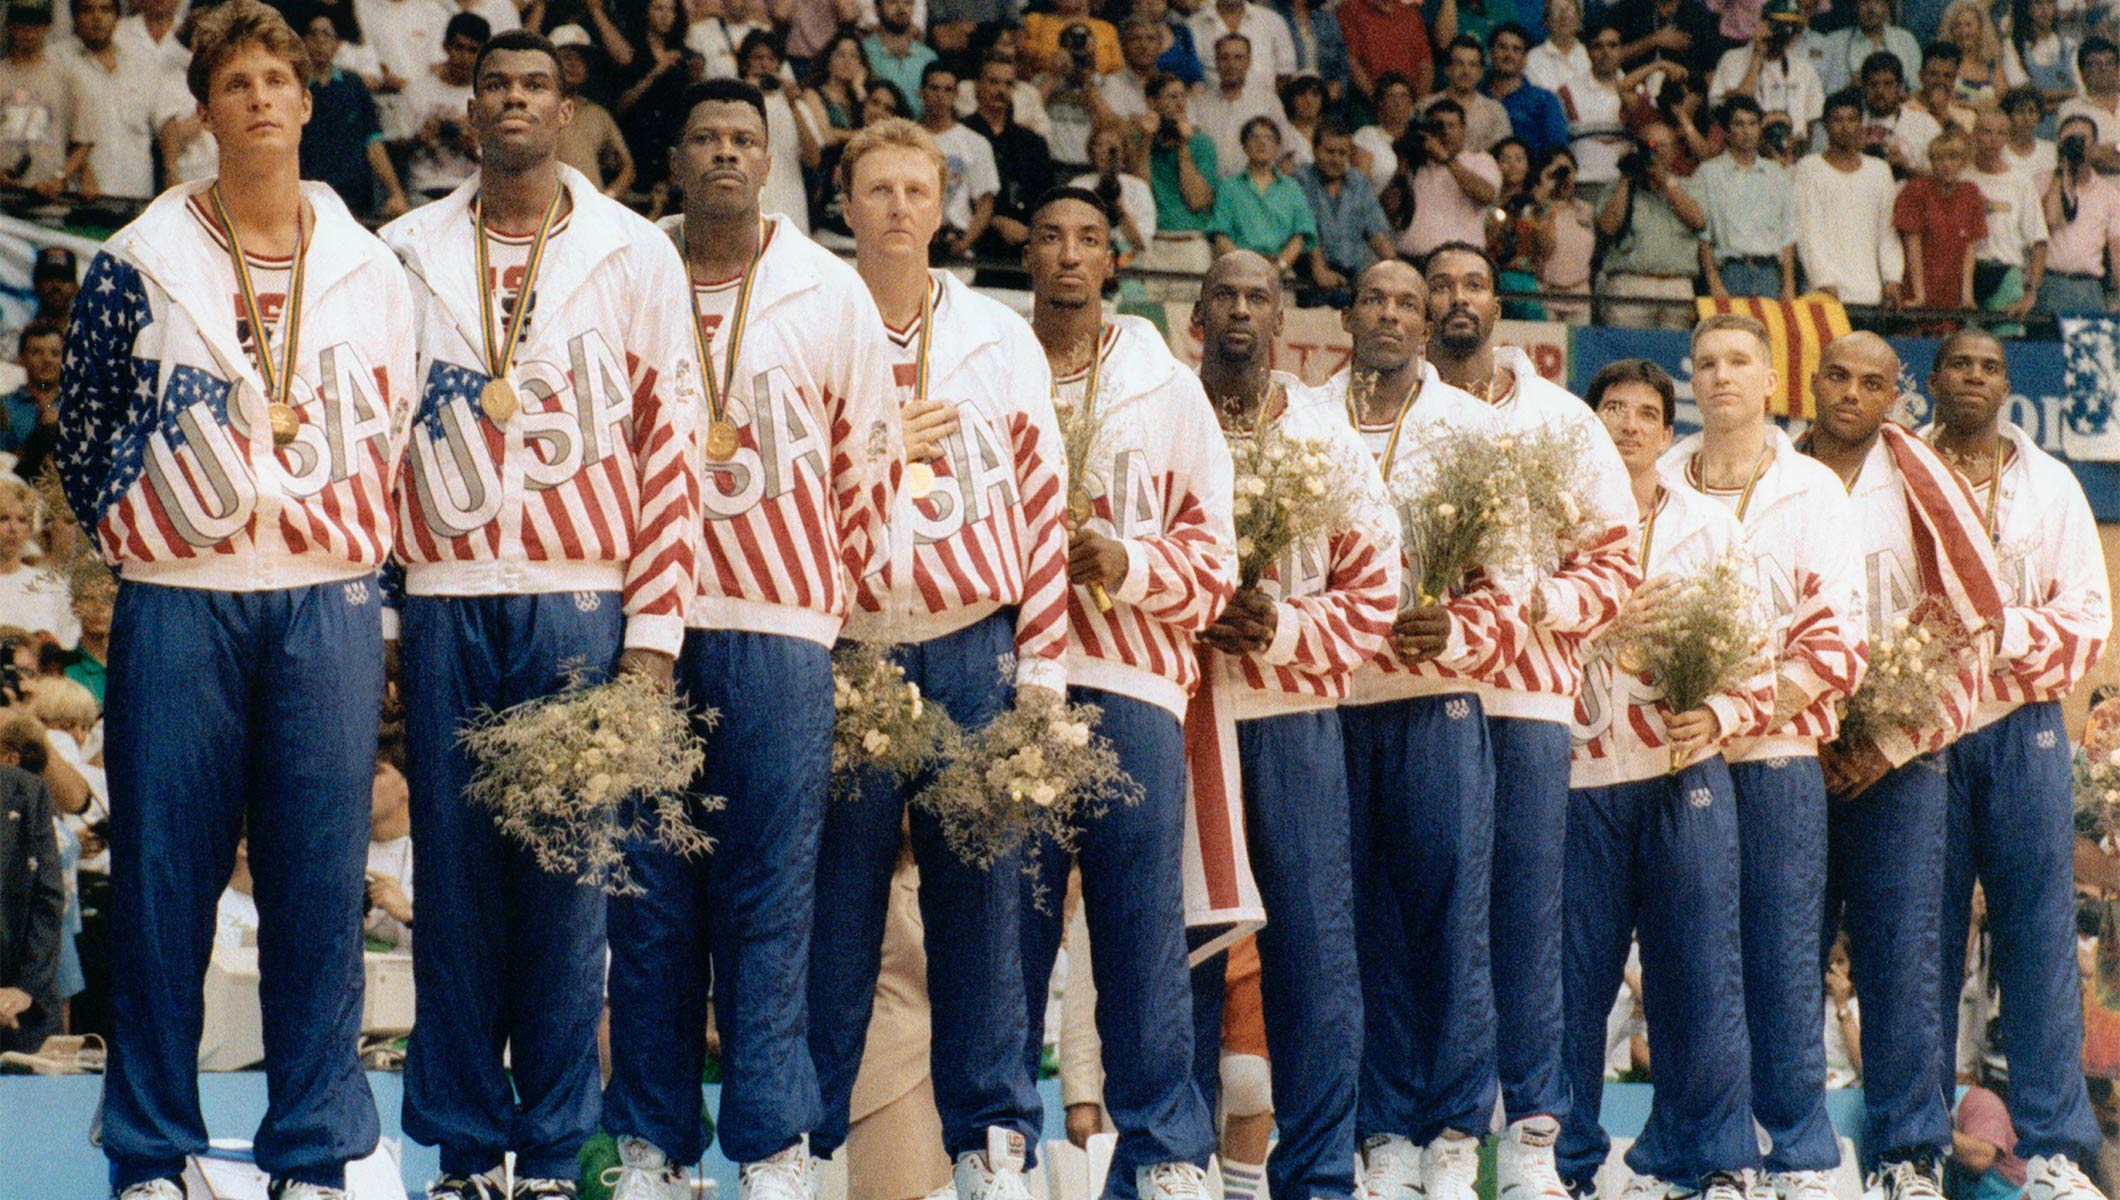 Basketball - Barcelona 1992 - Dream Team